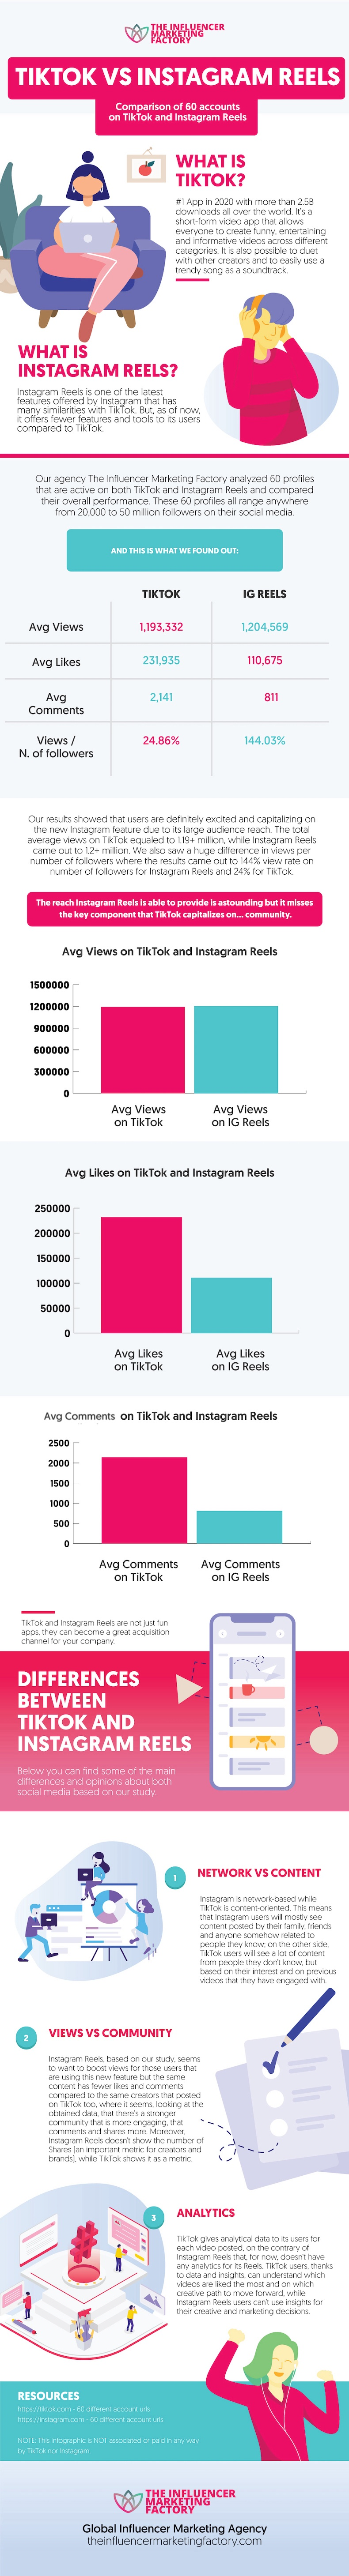 the difference in audience engagement between Instagram and TikTok Reels infographic